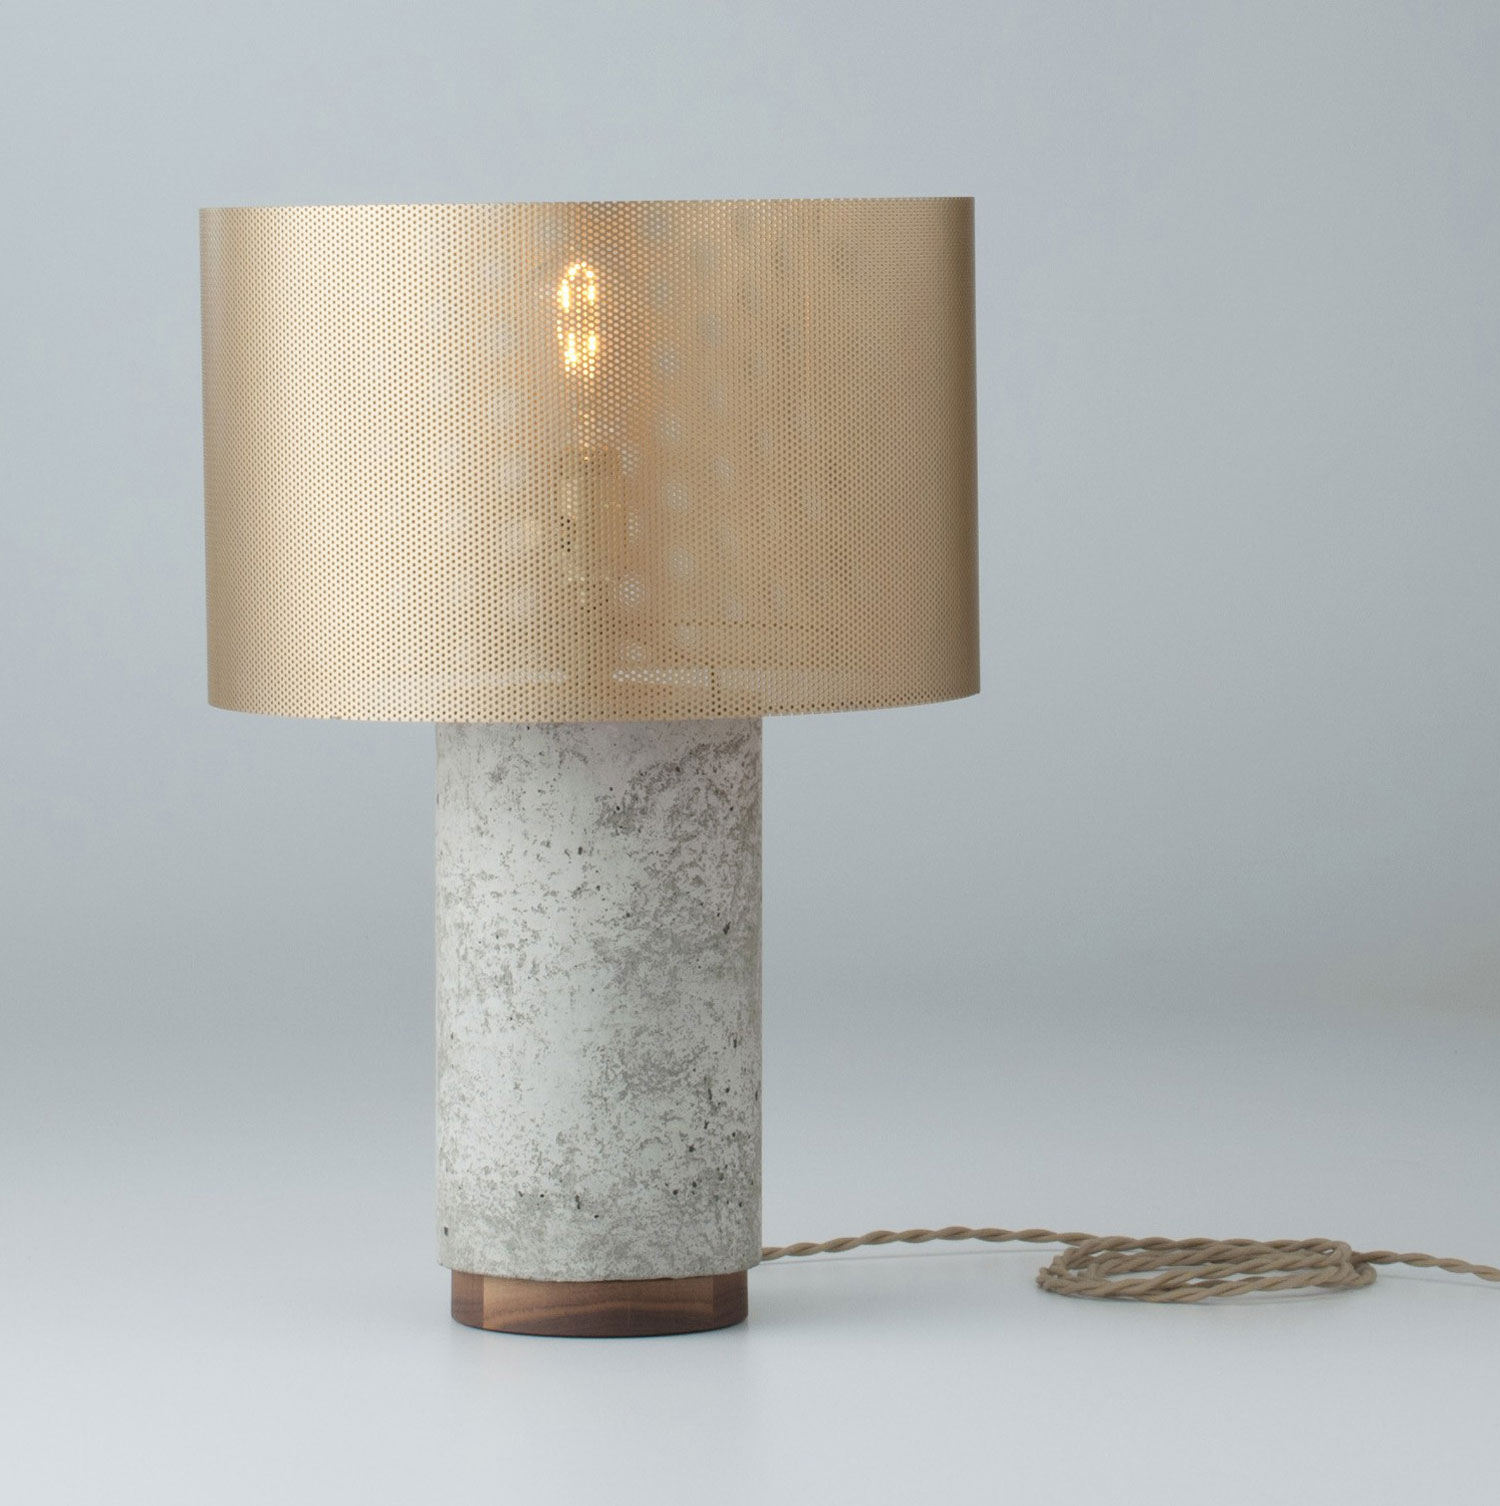 Bryant Concrete Table & Desk Lamp With Metal Shade from Schoolhouse Electric | Yellowtrace